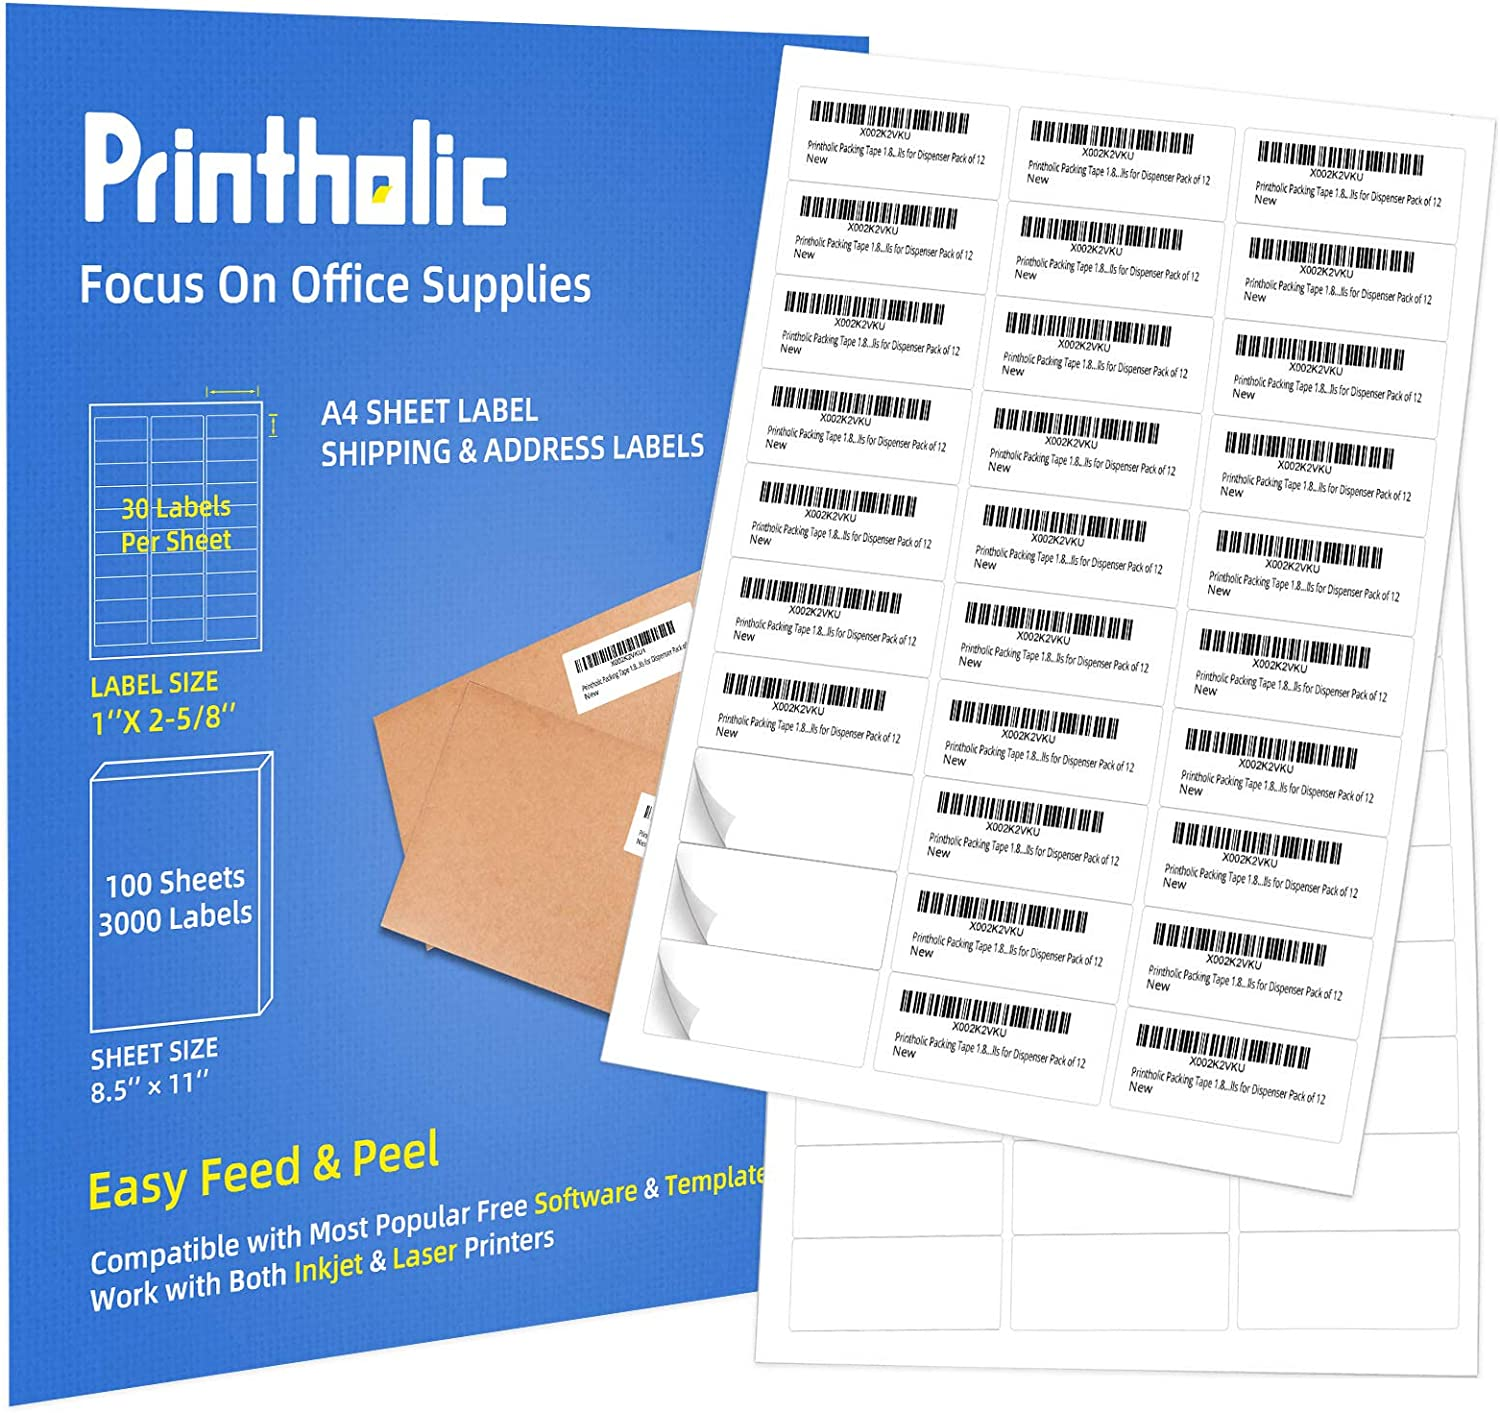 Printholic Colorado Springs Mall Direct sale of manufacturer 30-Up Shipping Labels 1